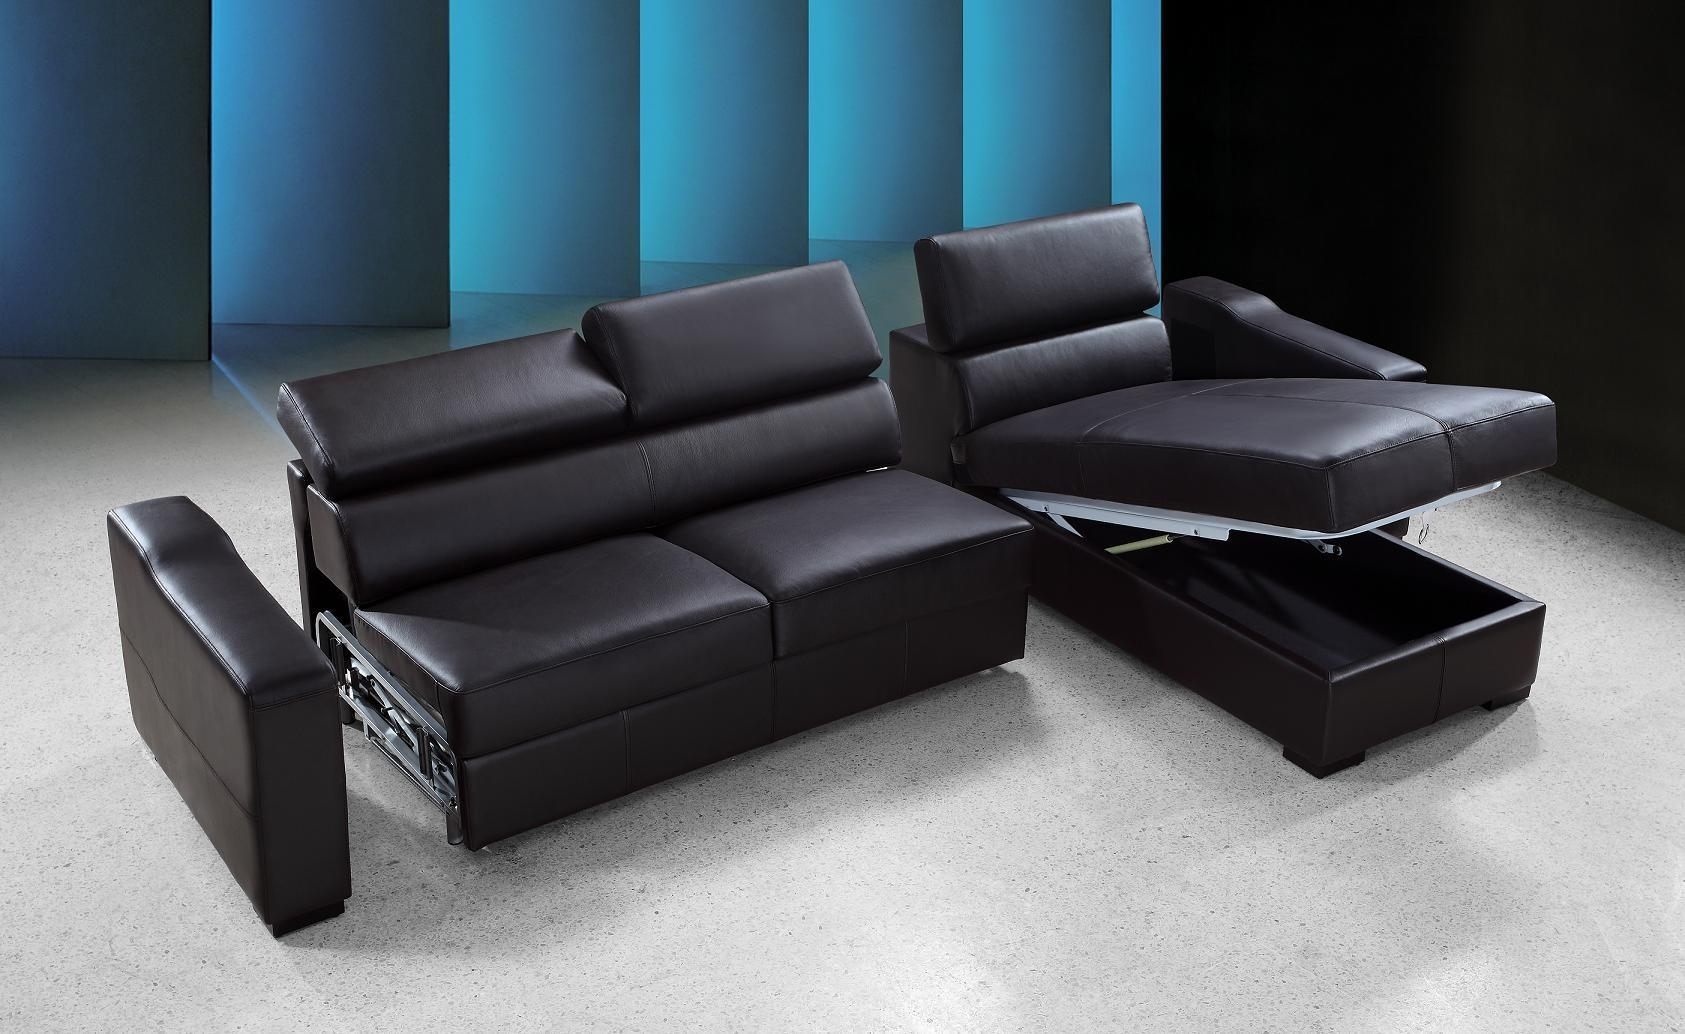 Flip Reversible Espresso Leather Sectional Sofa Bed W/ Storage Throughout Sofa Beds With Storage Chaise (Image 6 of 20)